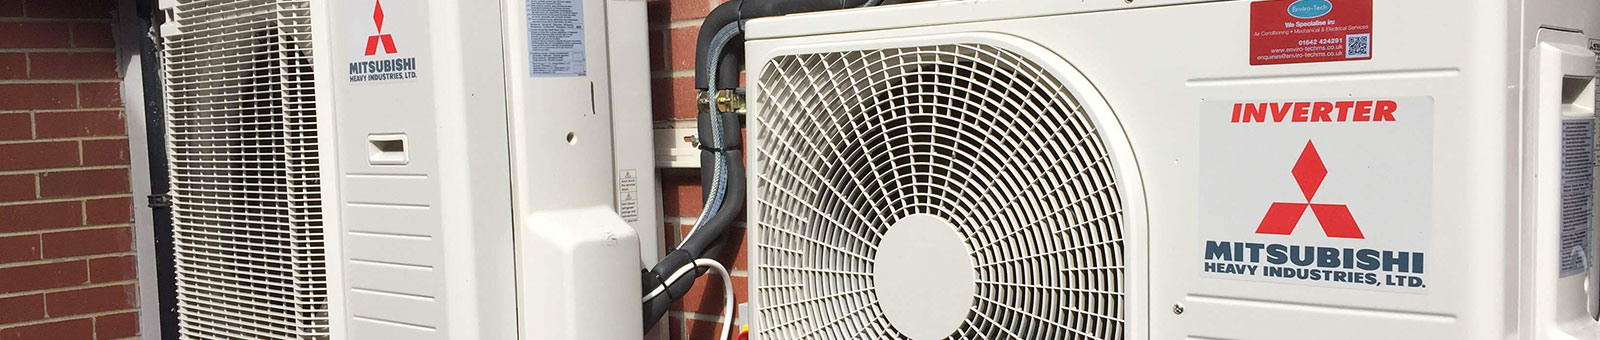 Air Conditioning Services and Support